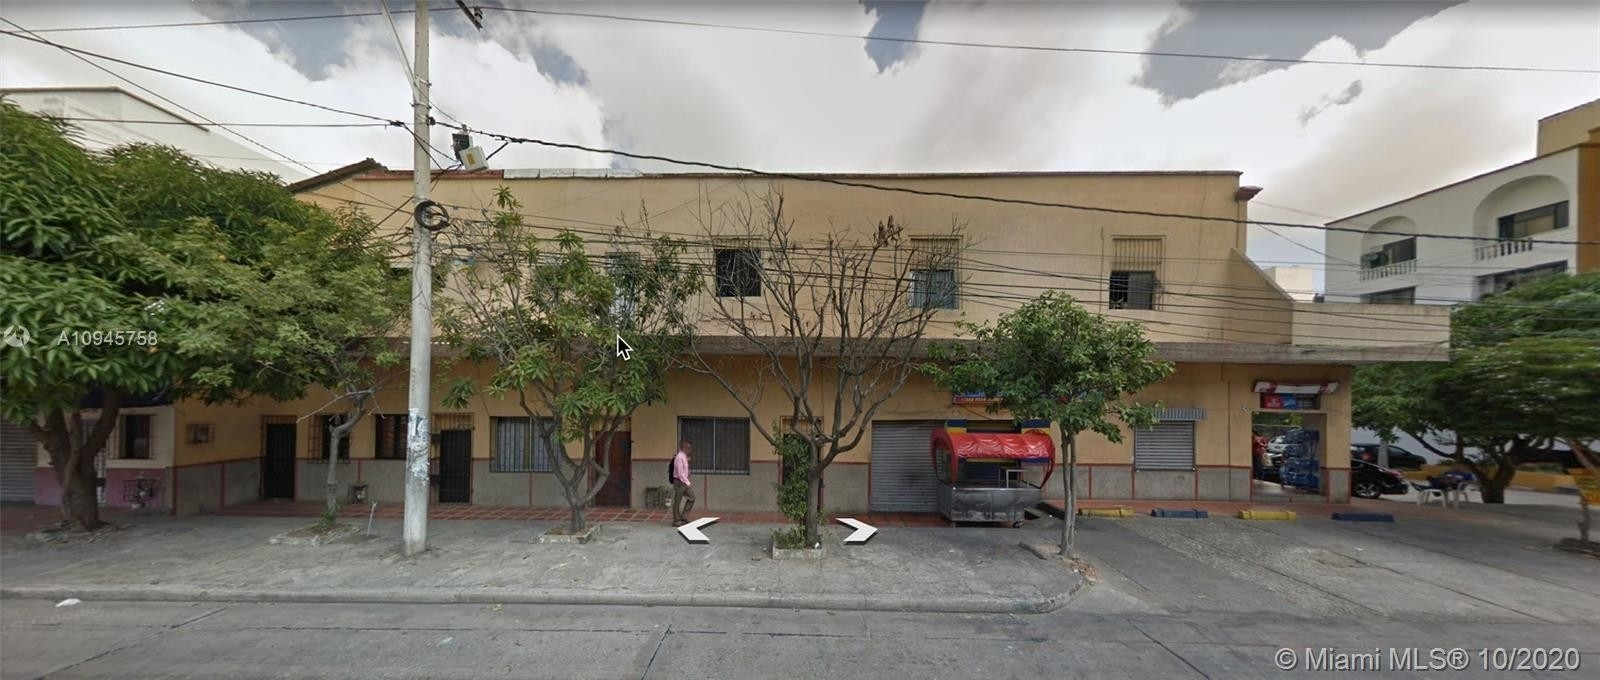 Comercial / Oficina por un Venta en Calle 70B #41-09 , COLOMBIA Other Areas, CO COLOM